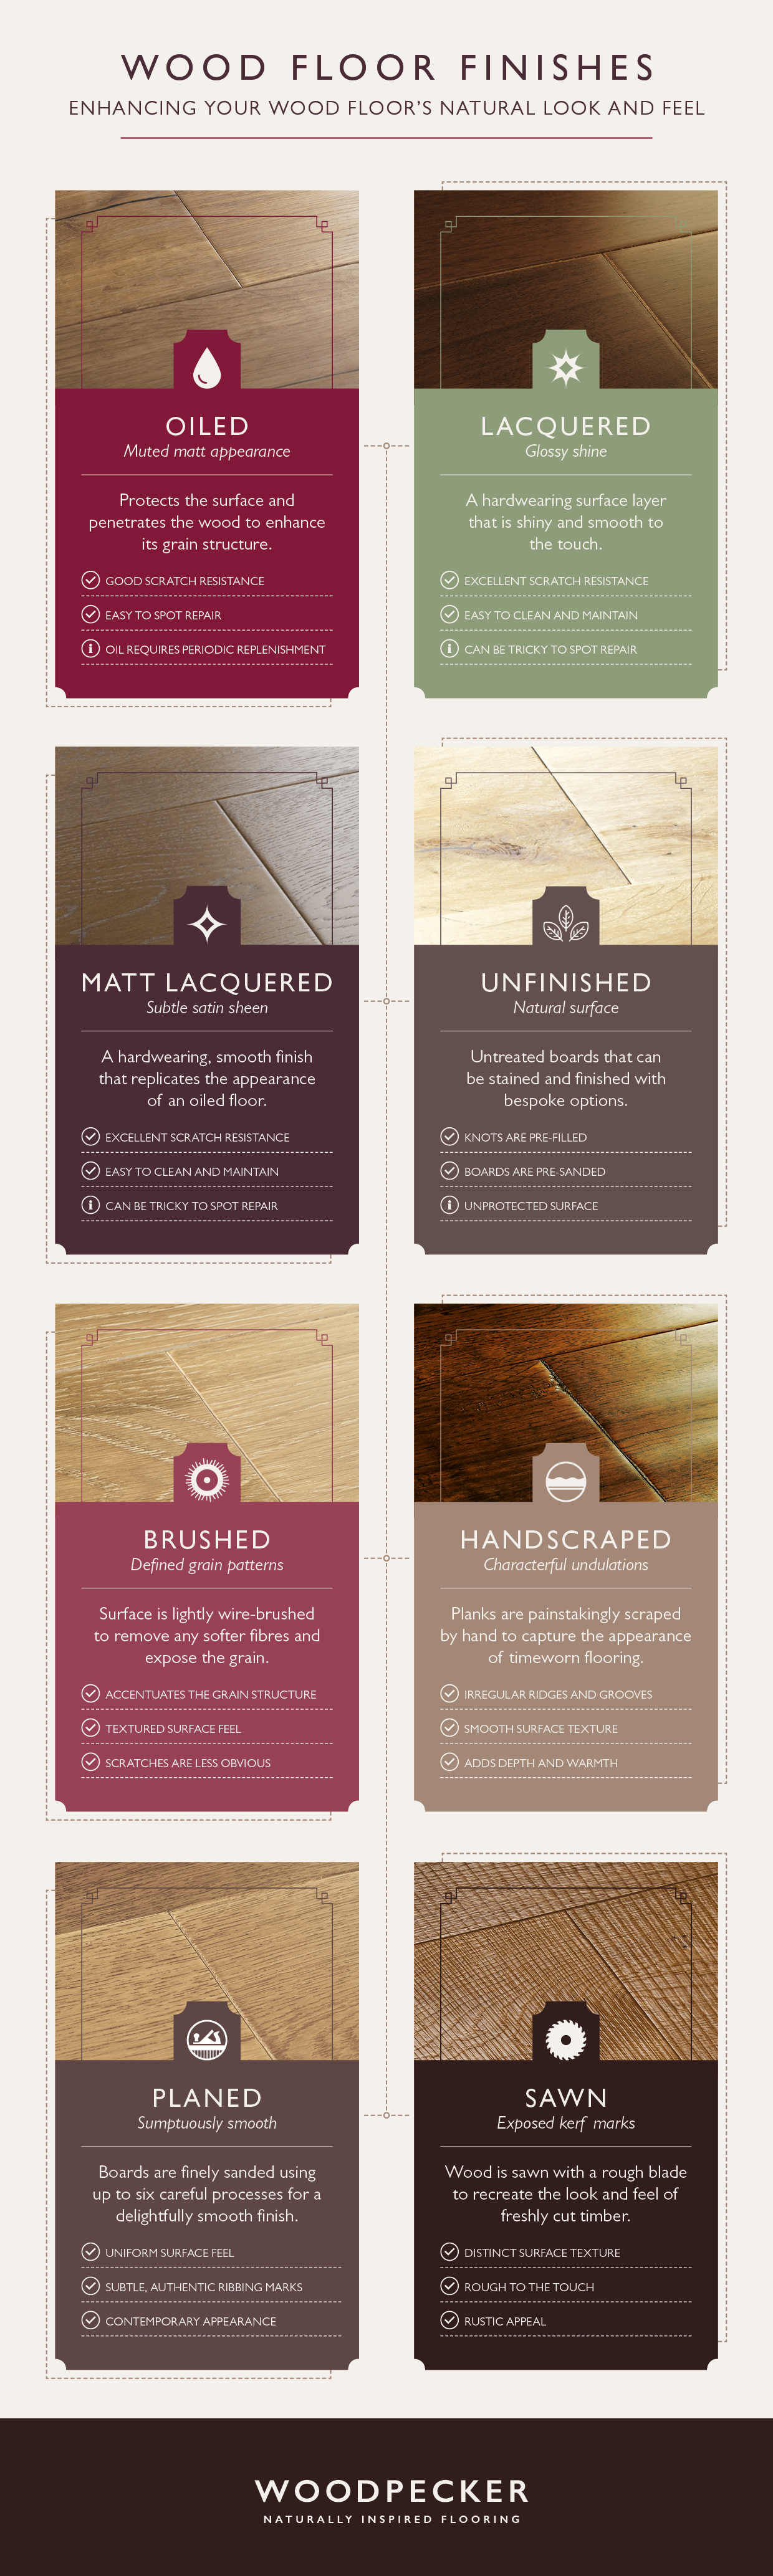 Wood Floor Finishes Guide Infographic Woodpecker Flooring